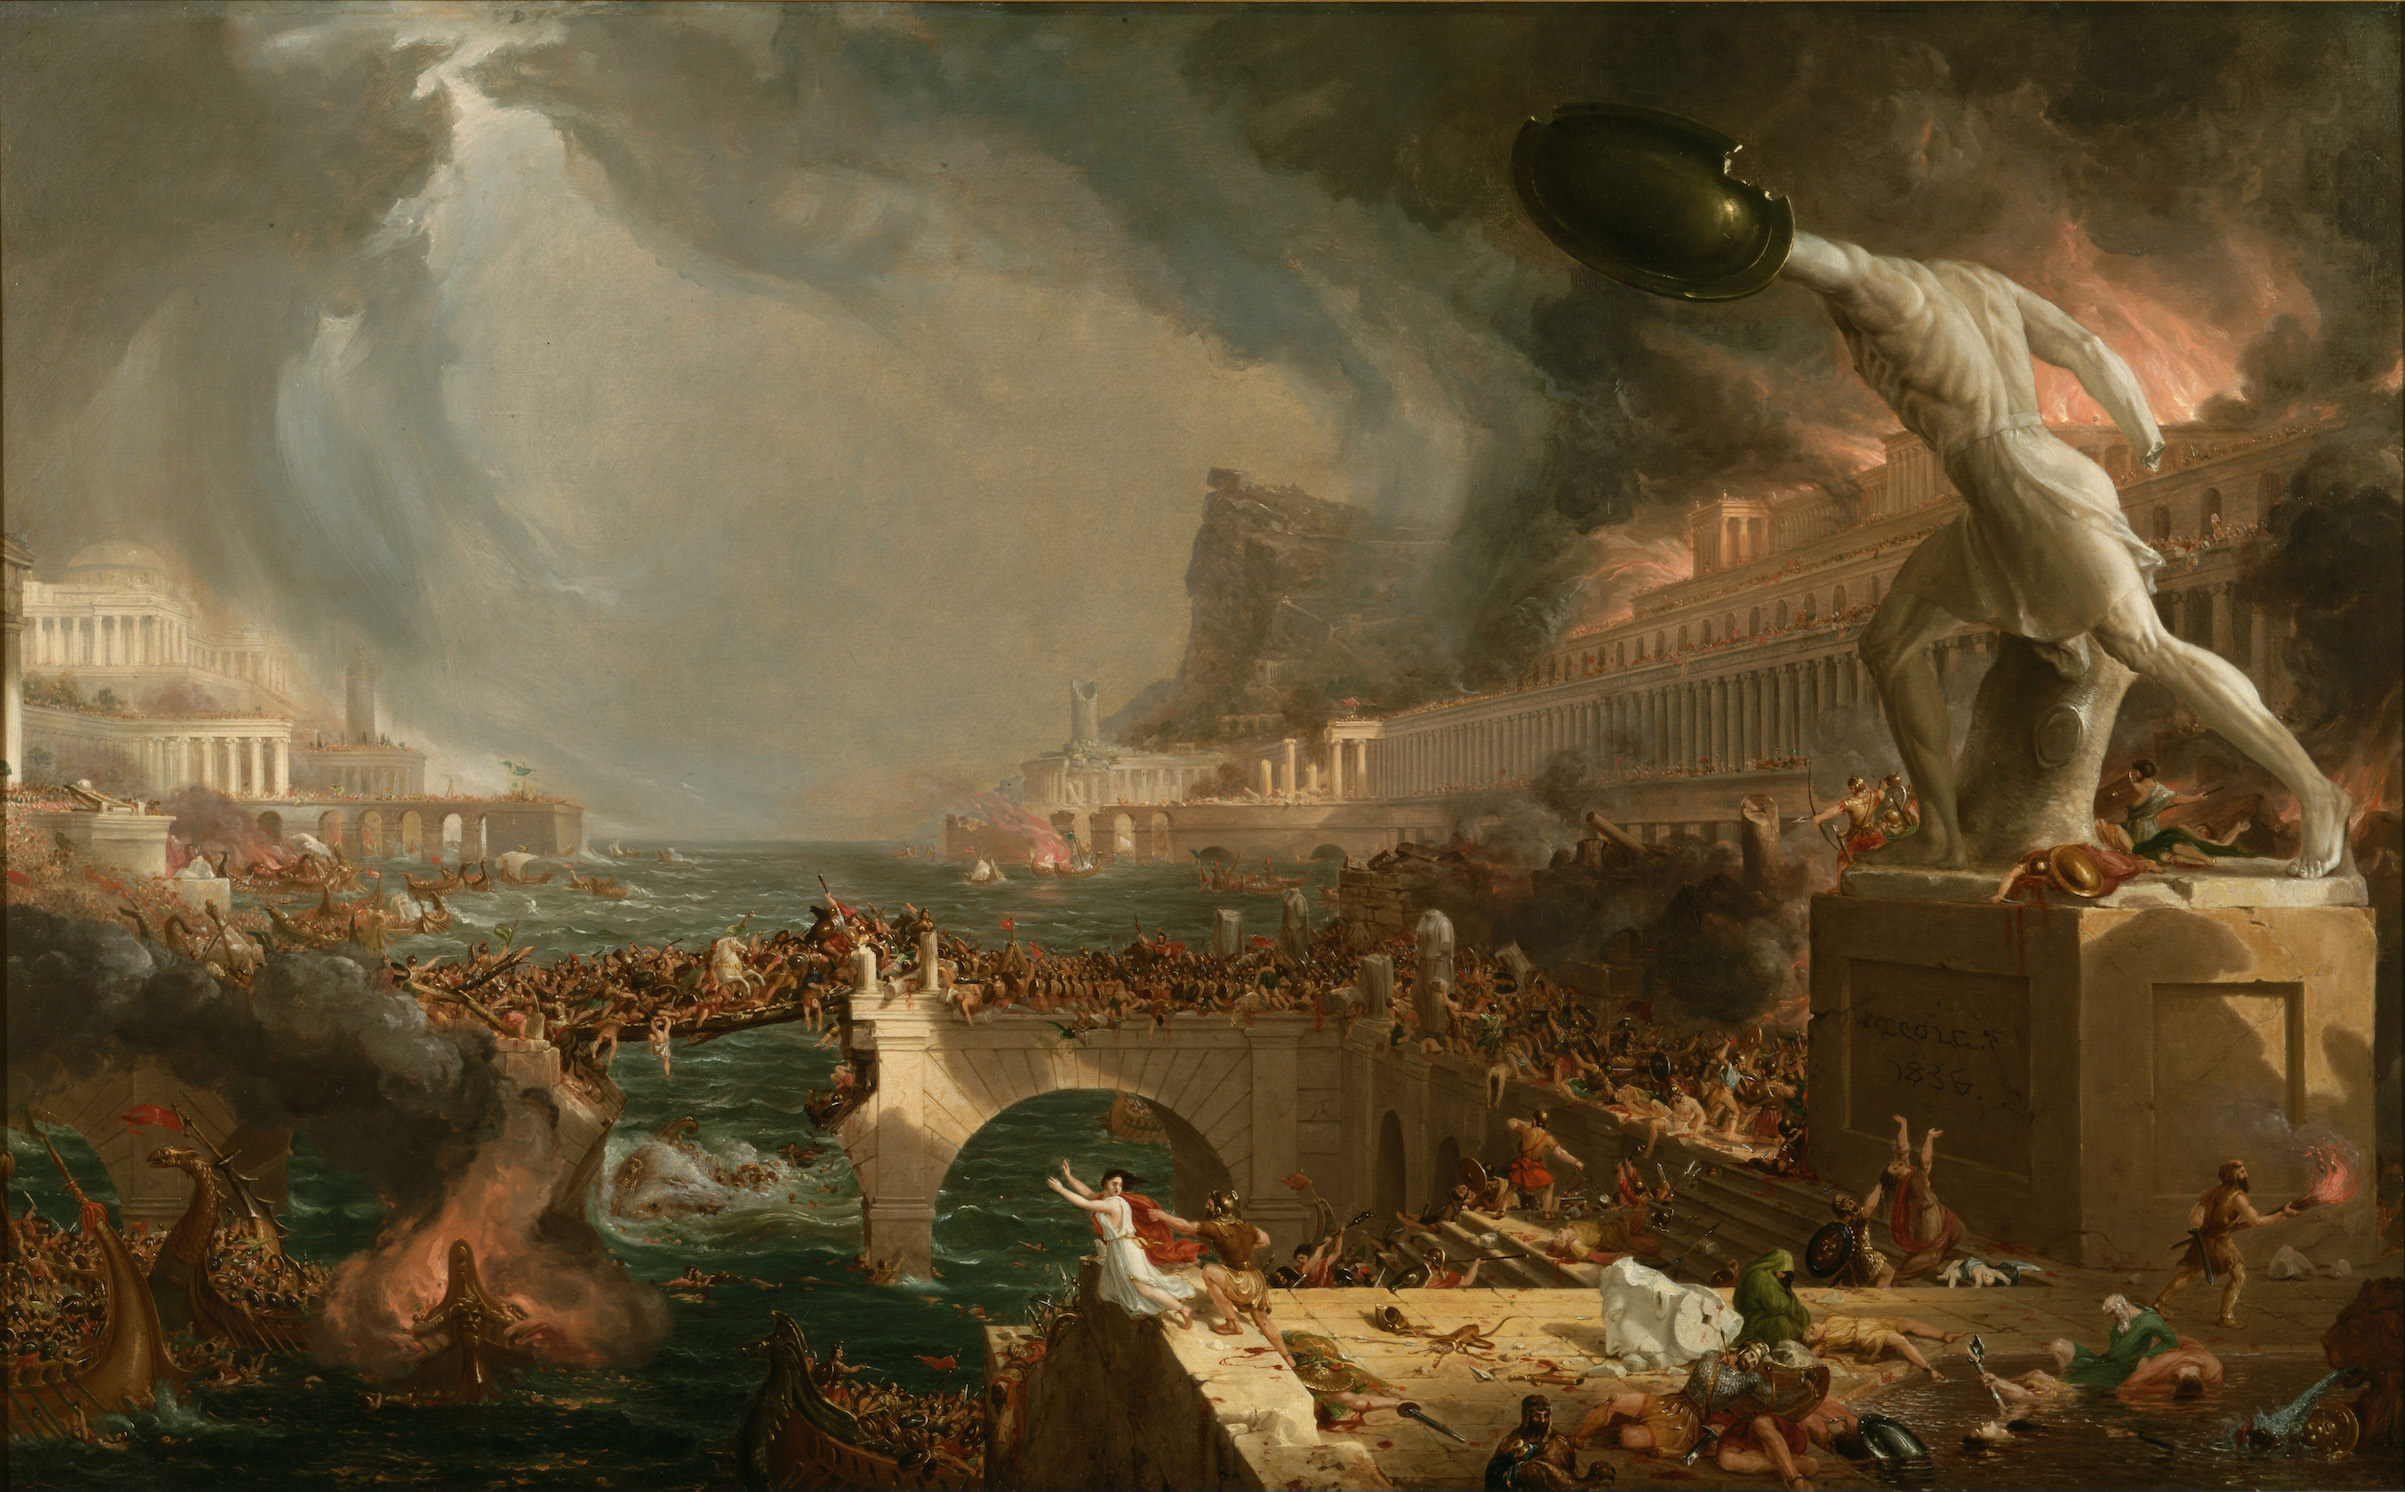 The Course of Empire: Destruction, 1836, by Thomas Cole. Found in the collection of the New-York Historical Society.